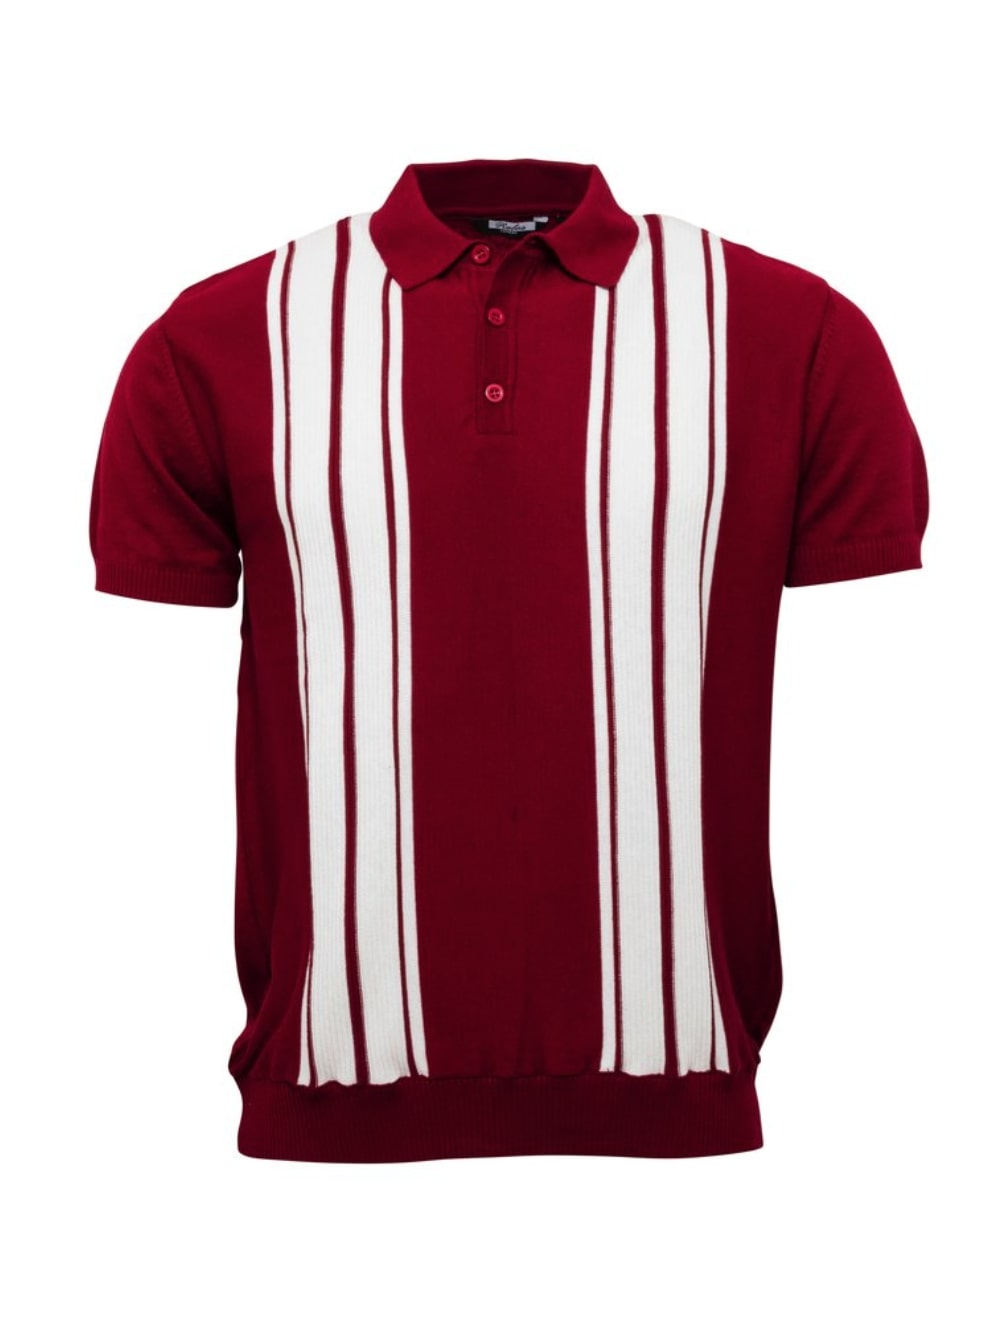 Mens Knitted Short Sleeve Polo Shirts - GIAN LONDON